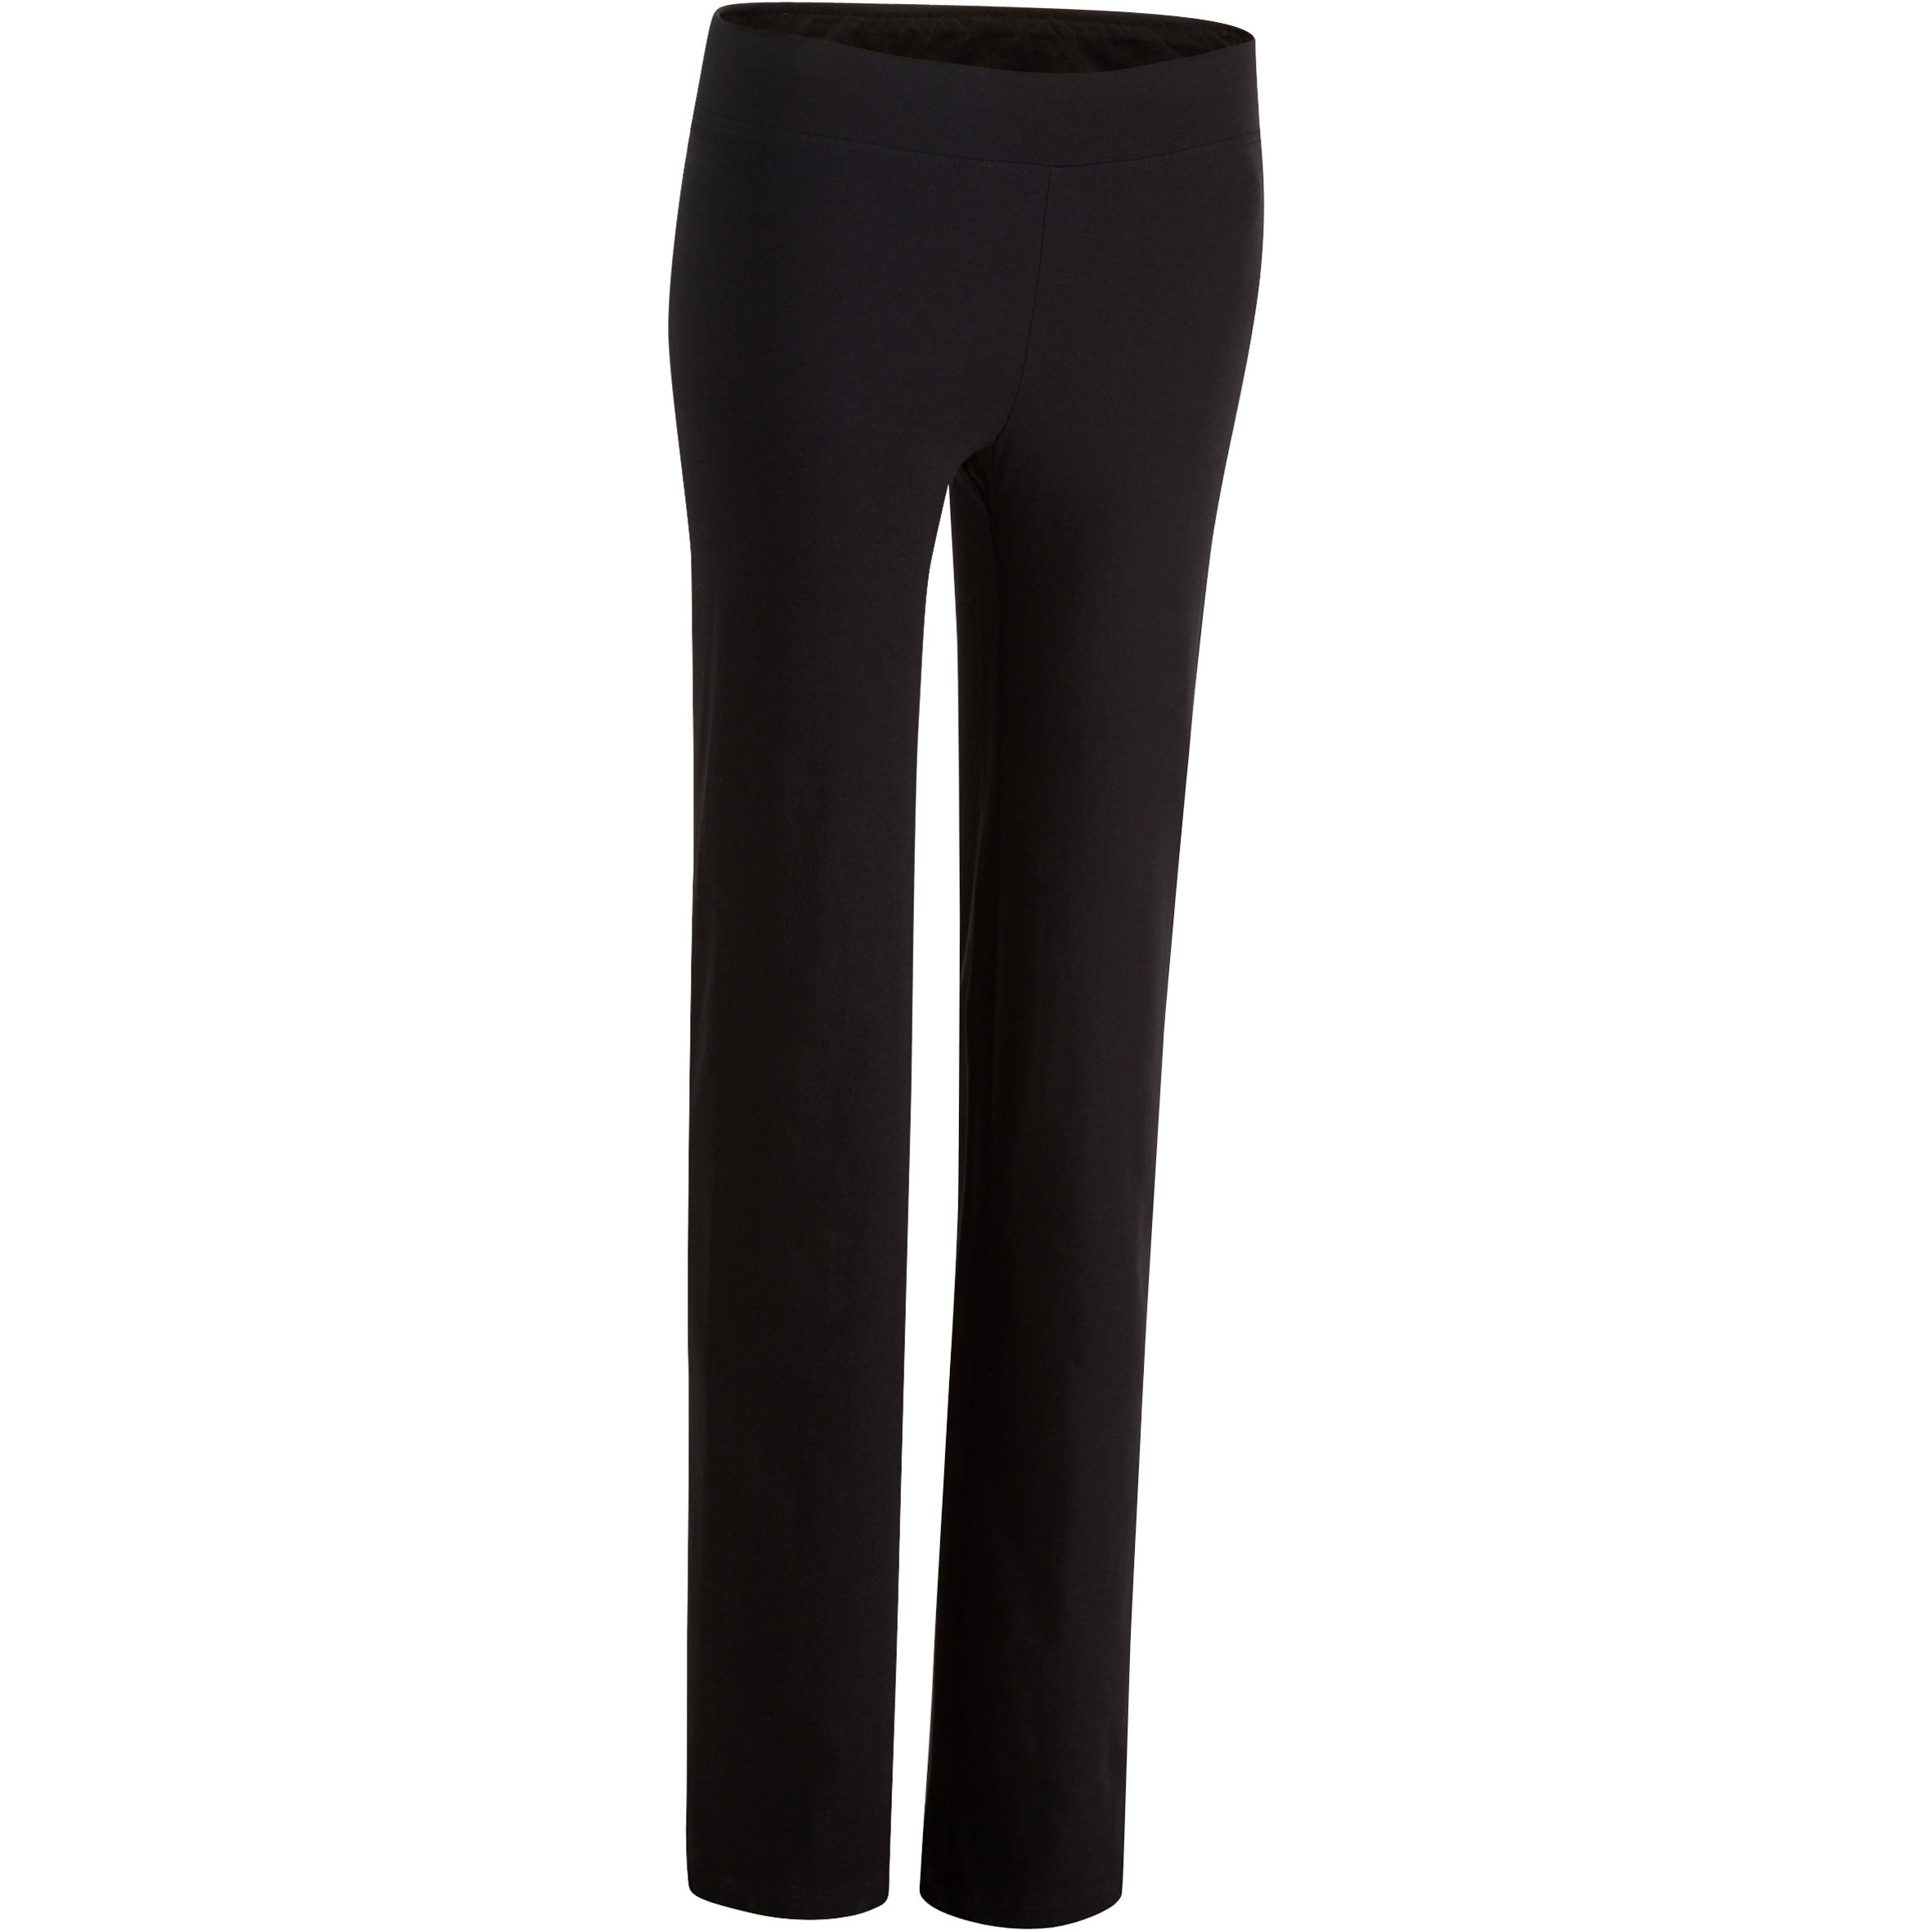 Leggings FIT+ regular fitness mujer negro